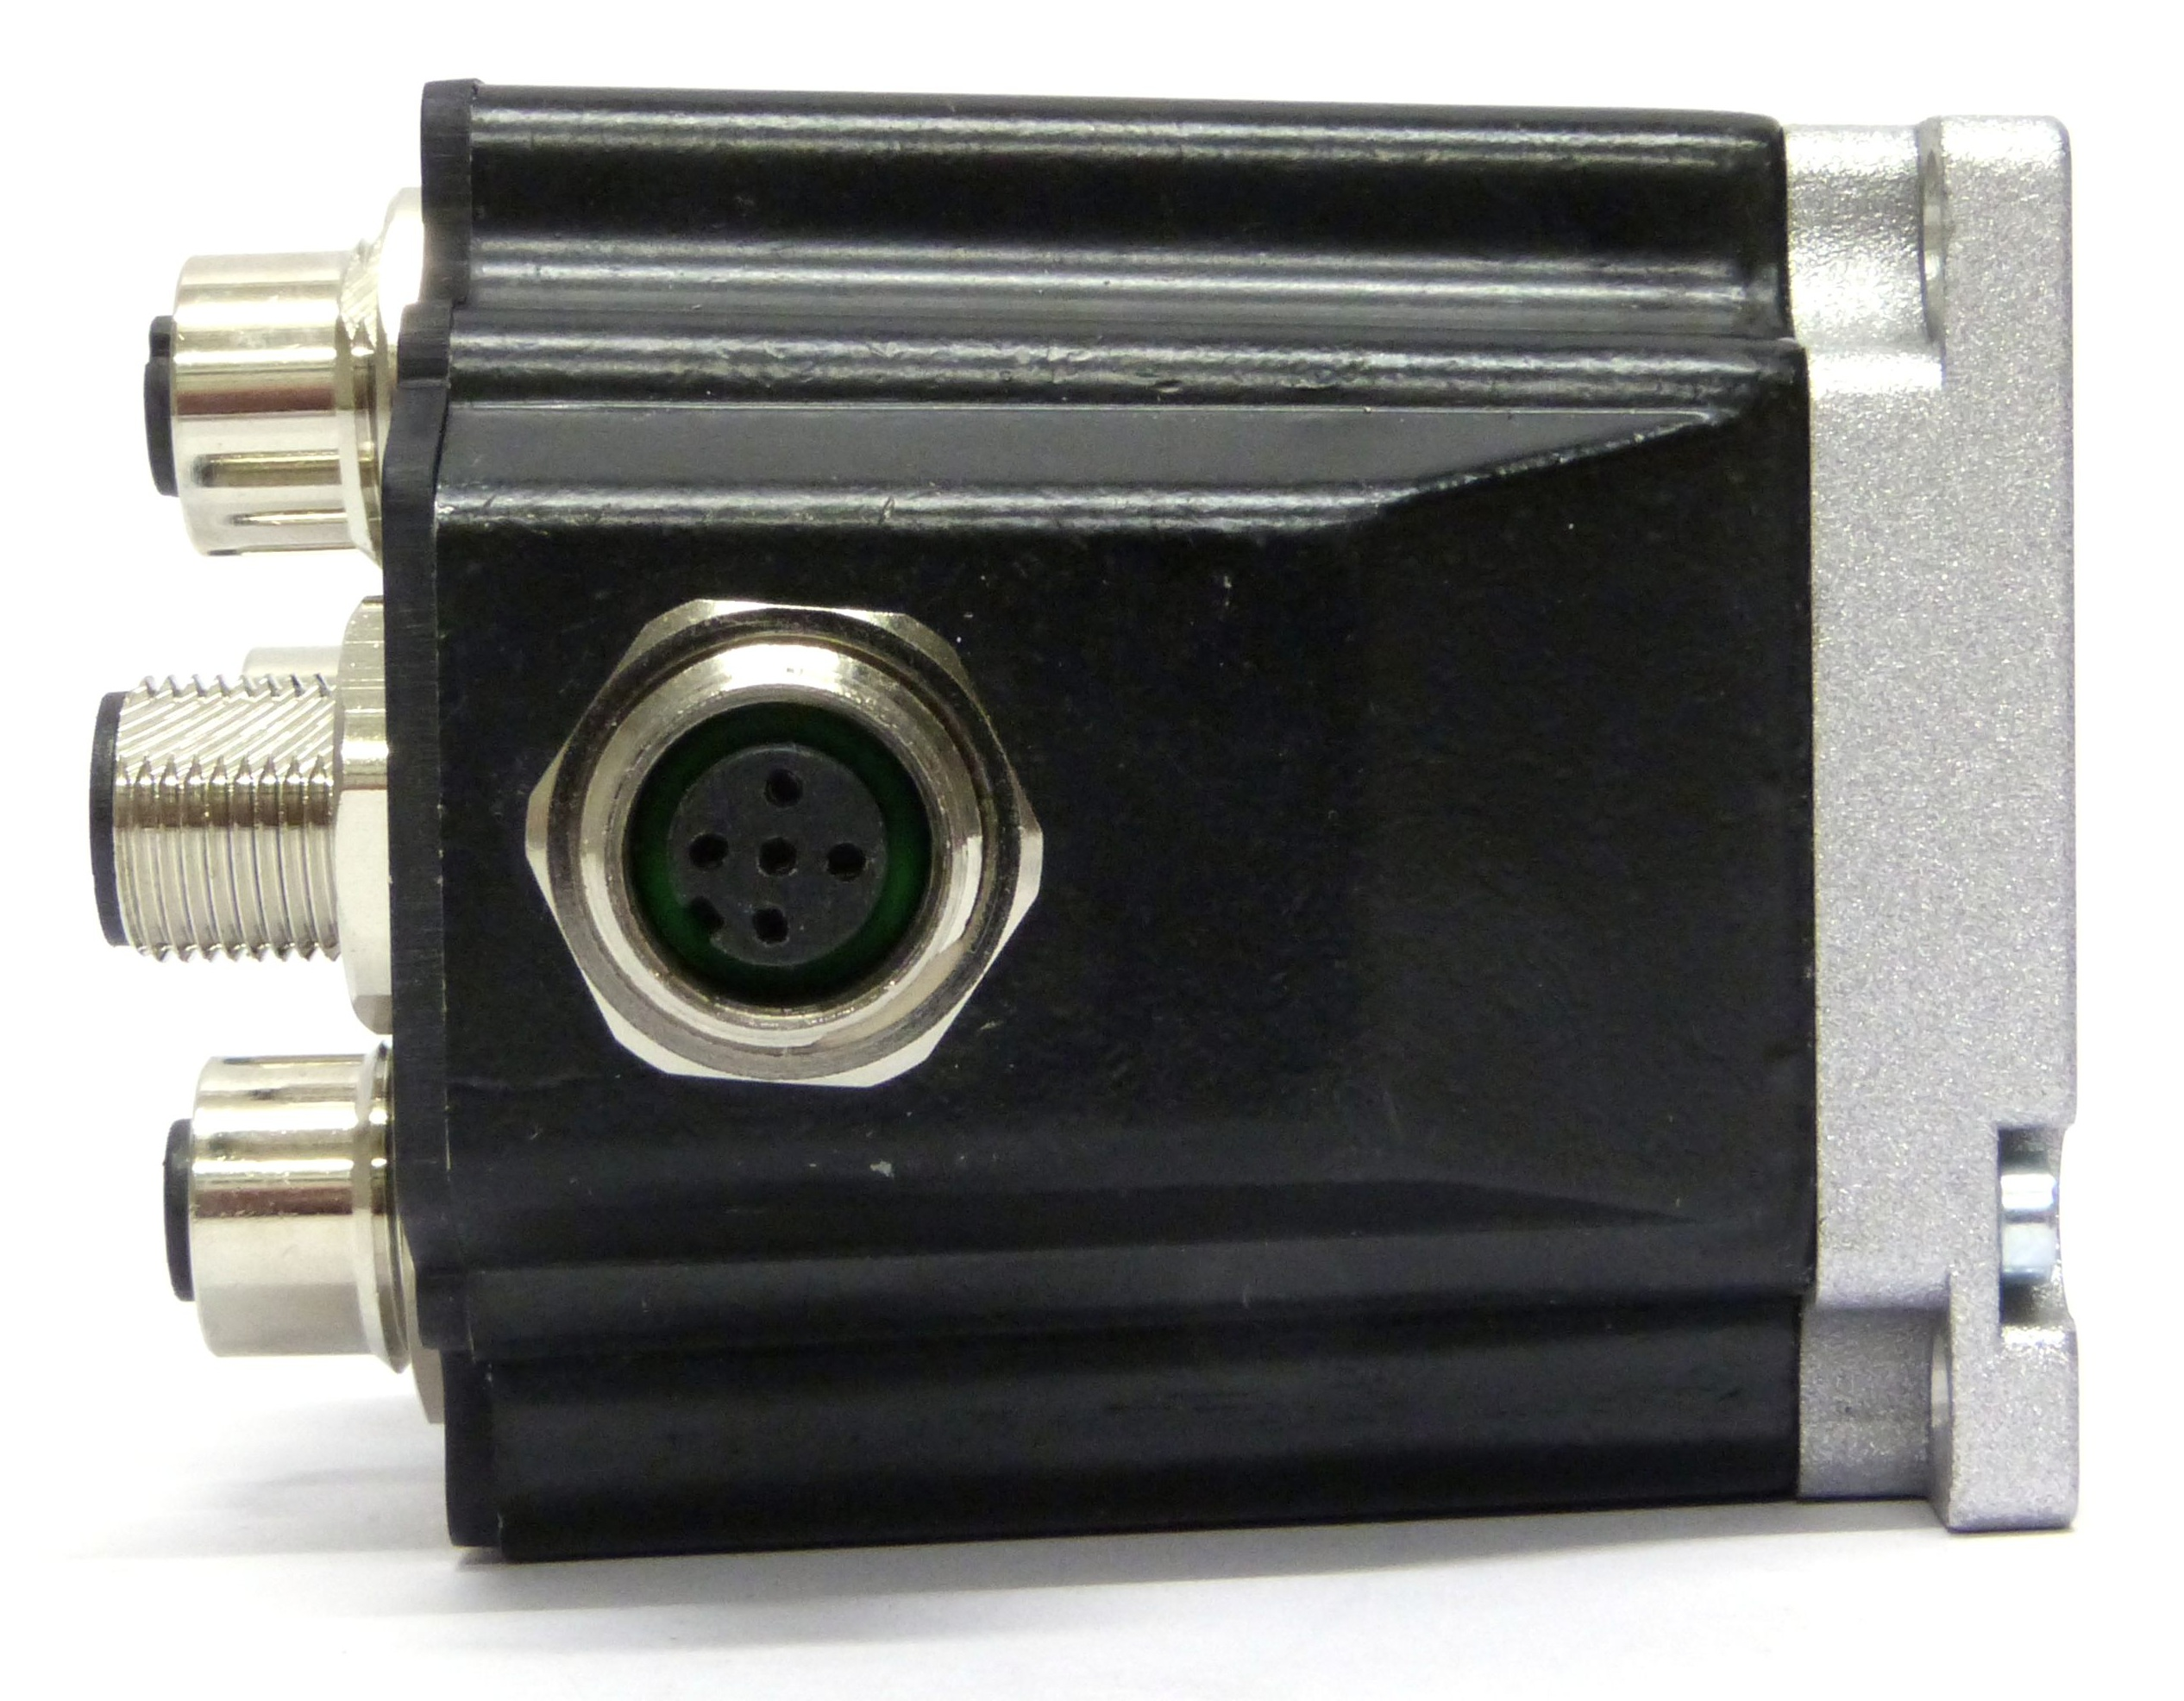 Integrated stepper motor from JVL with high torque